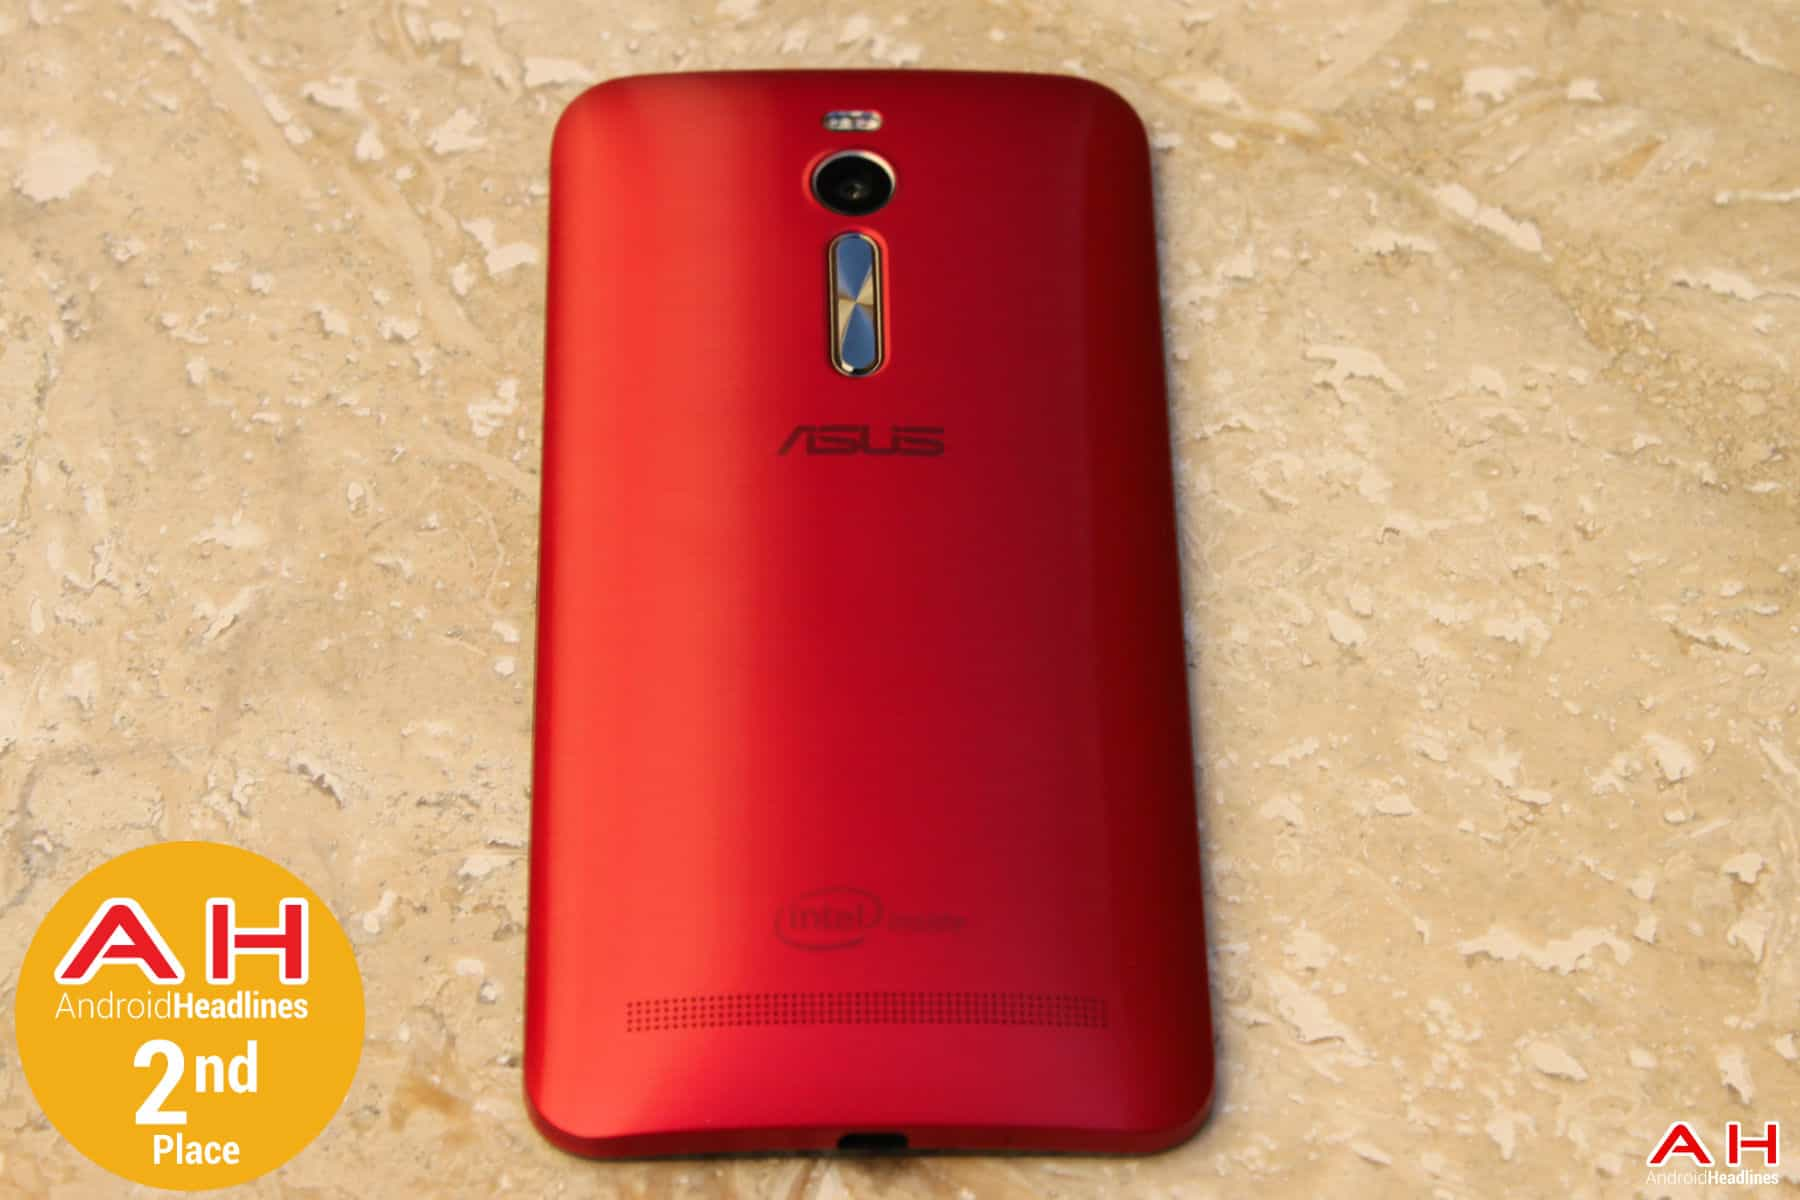 ASUS ZenFone 2 AH Awards